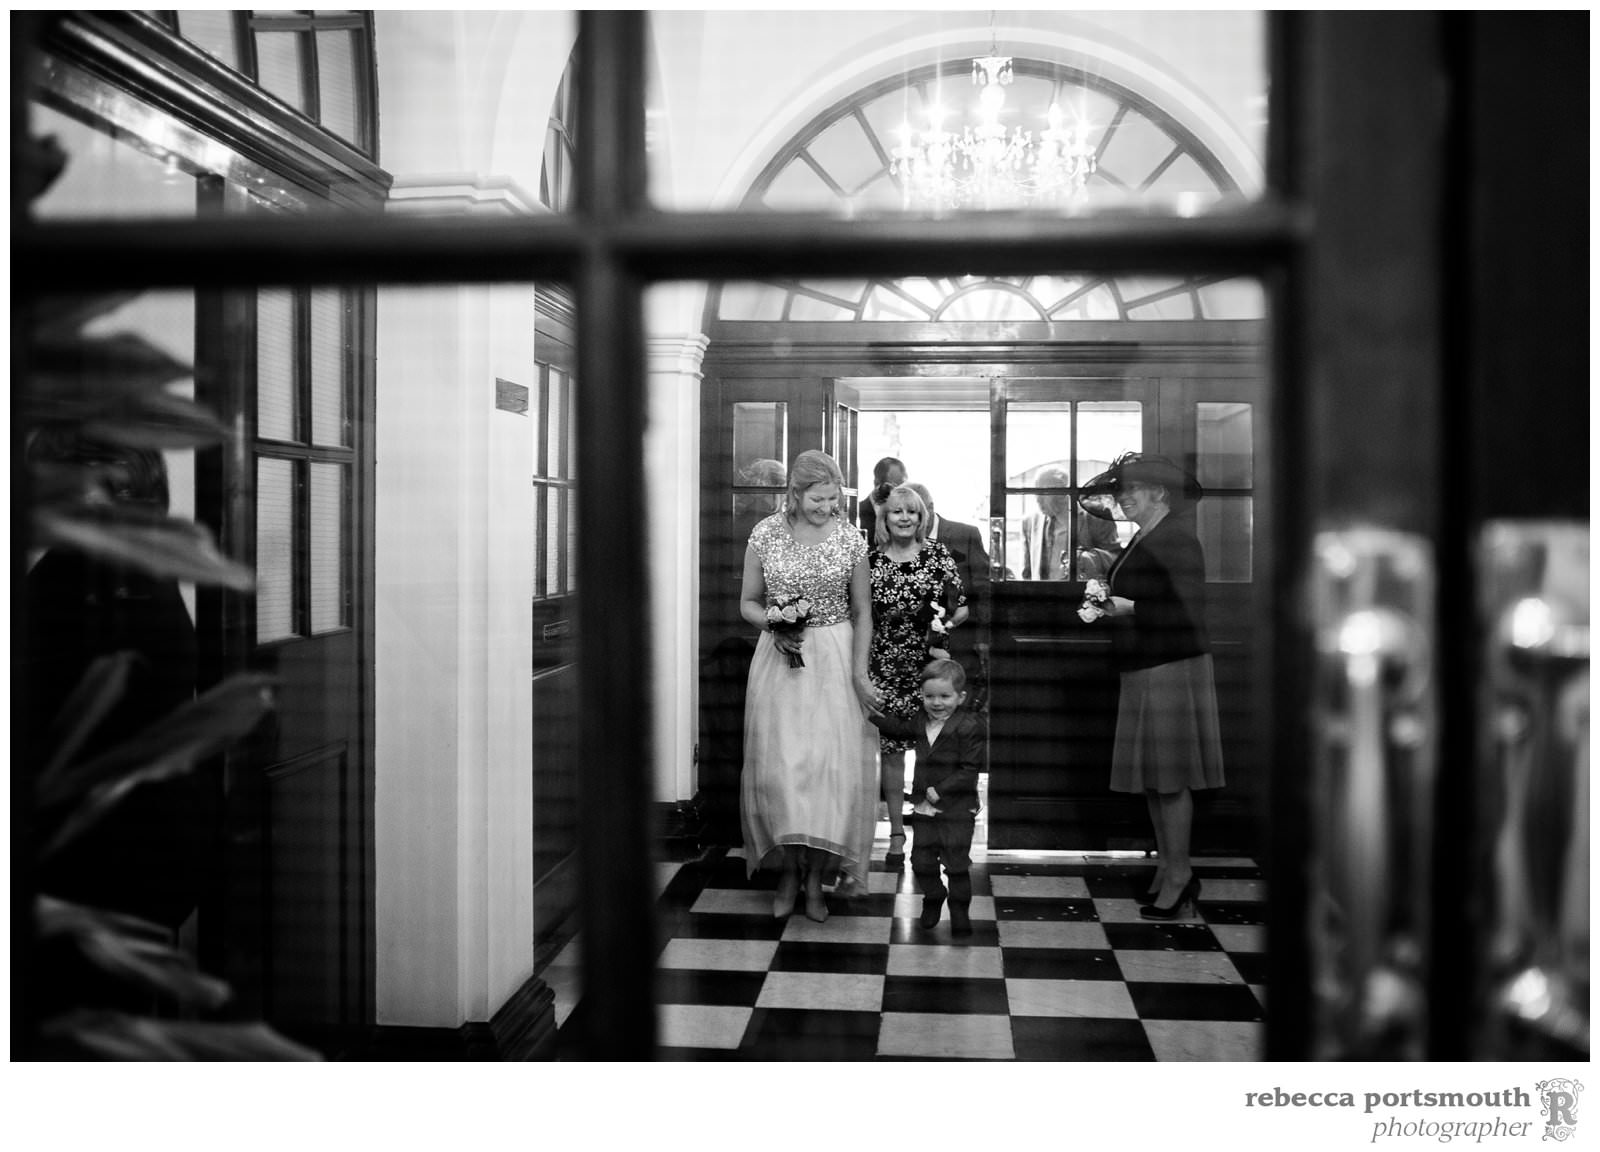 The bride and son arriving at Chelsea Registry Office for her wedding in the Rossetti Room